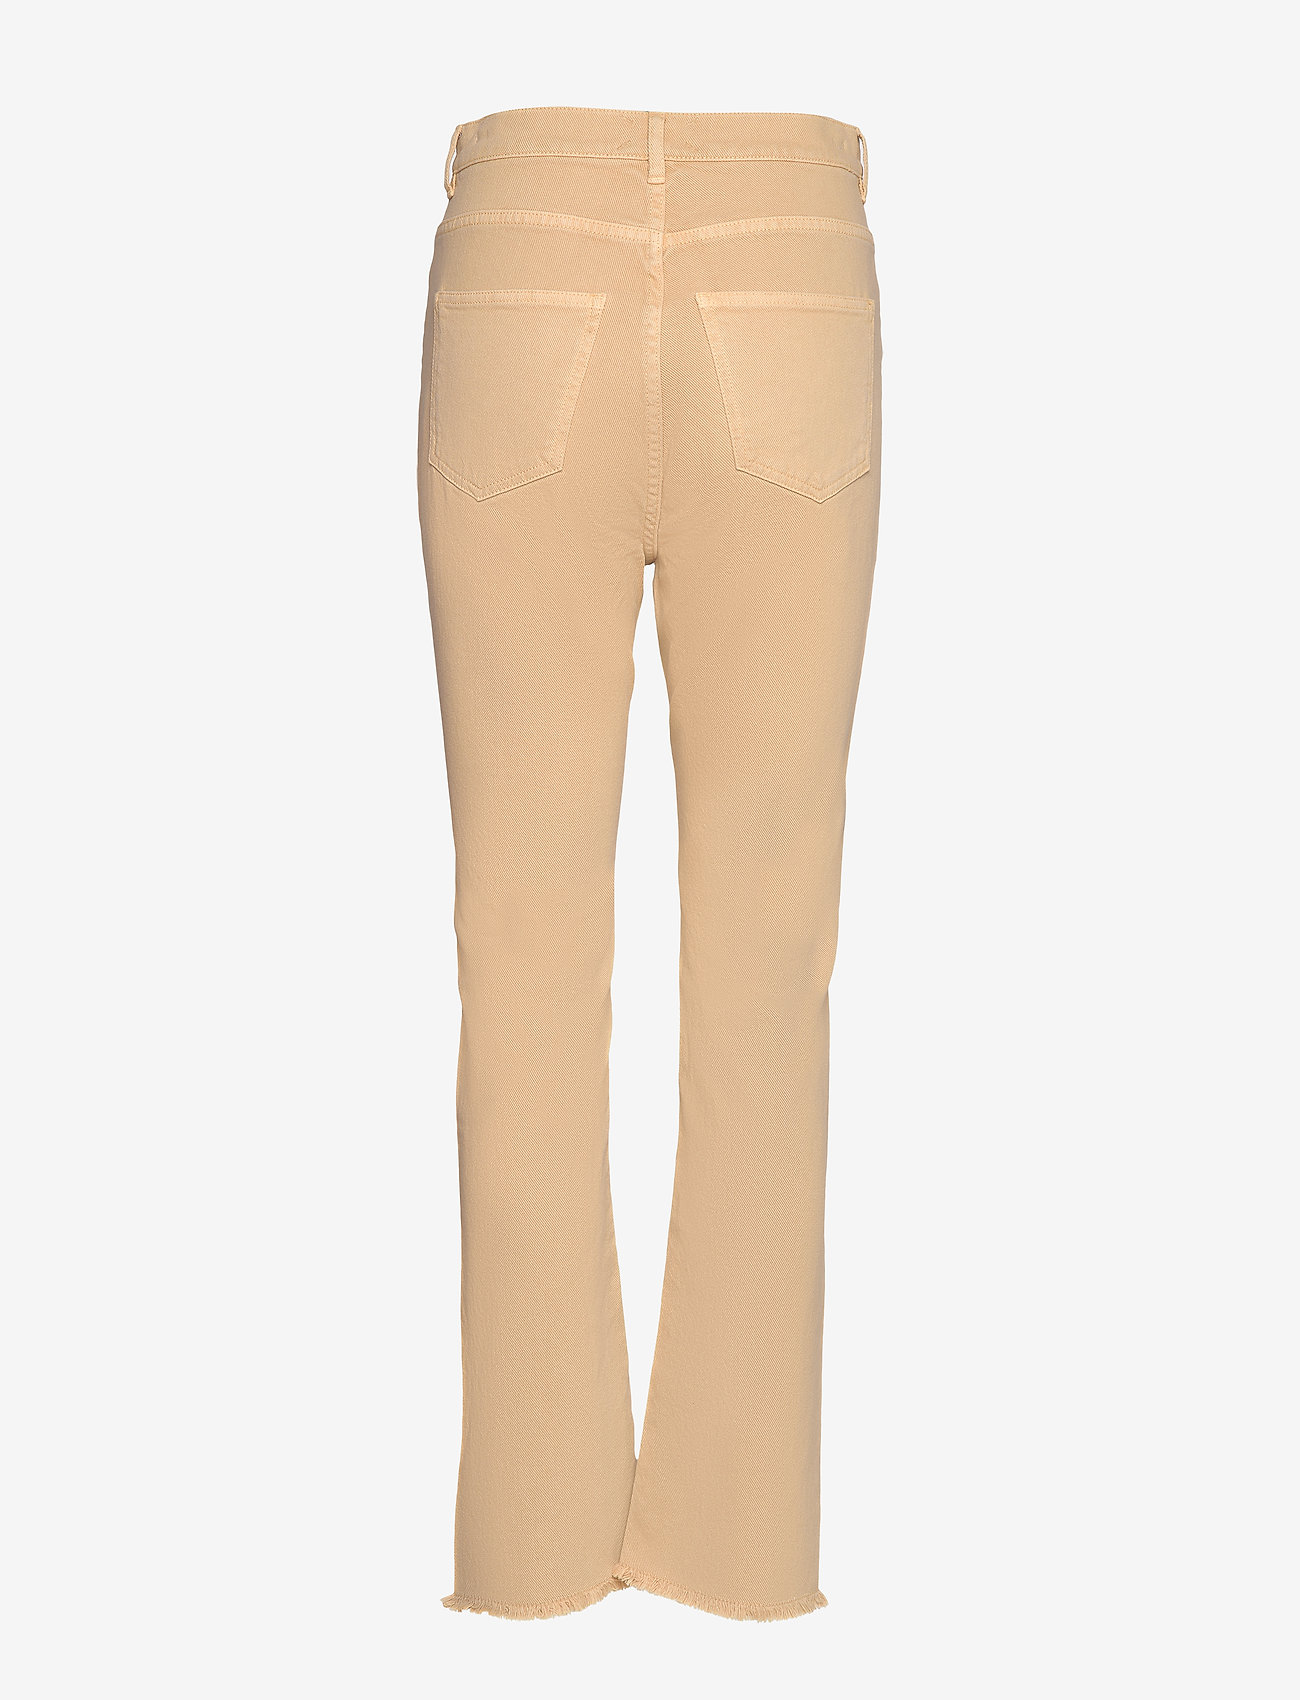 SAND - 0639 - Kathy Cropped - boot cut jeans - sand - 1